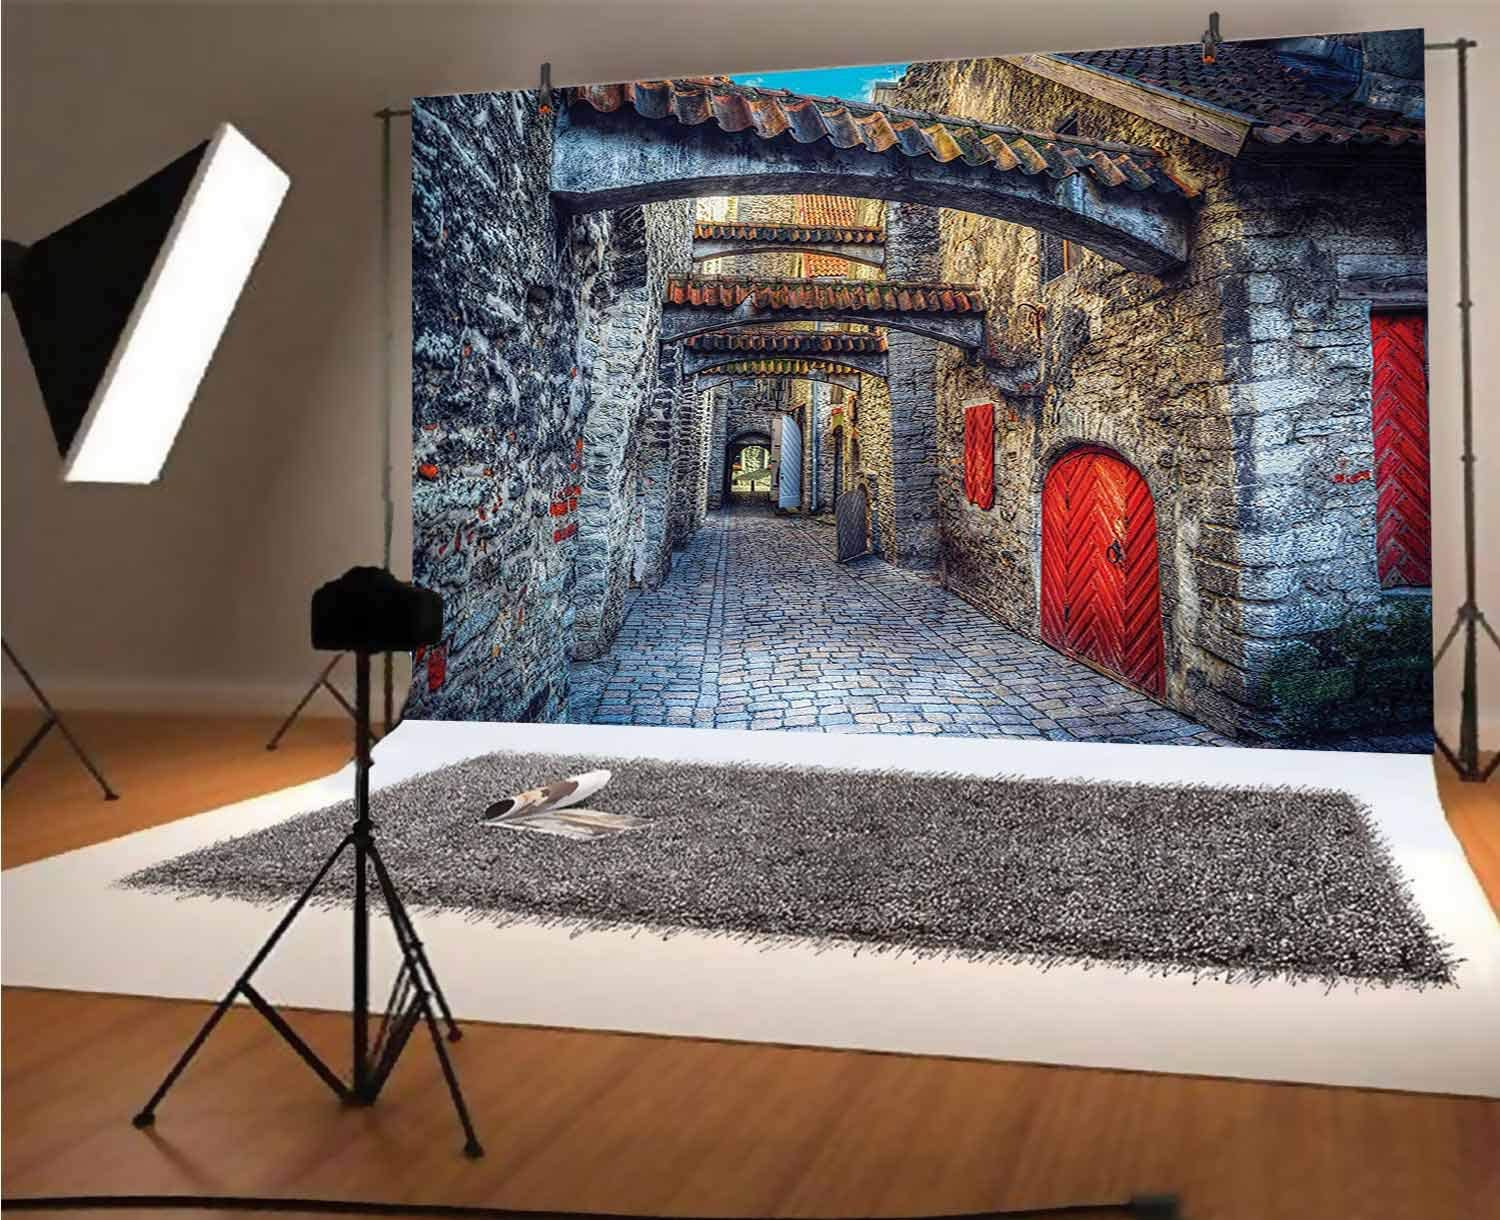 Medieval 8x6 FT Vinyl Photo Backdrops,Old Stone Street with Stone Passage Estonia Medieval Town Heritage Photo Art Background for Selfie Birthday Party Pictures Photo Booth Shoot